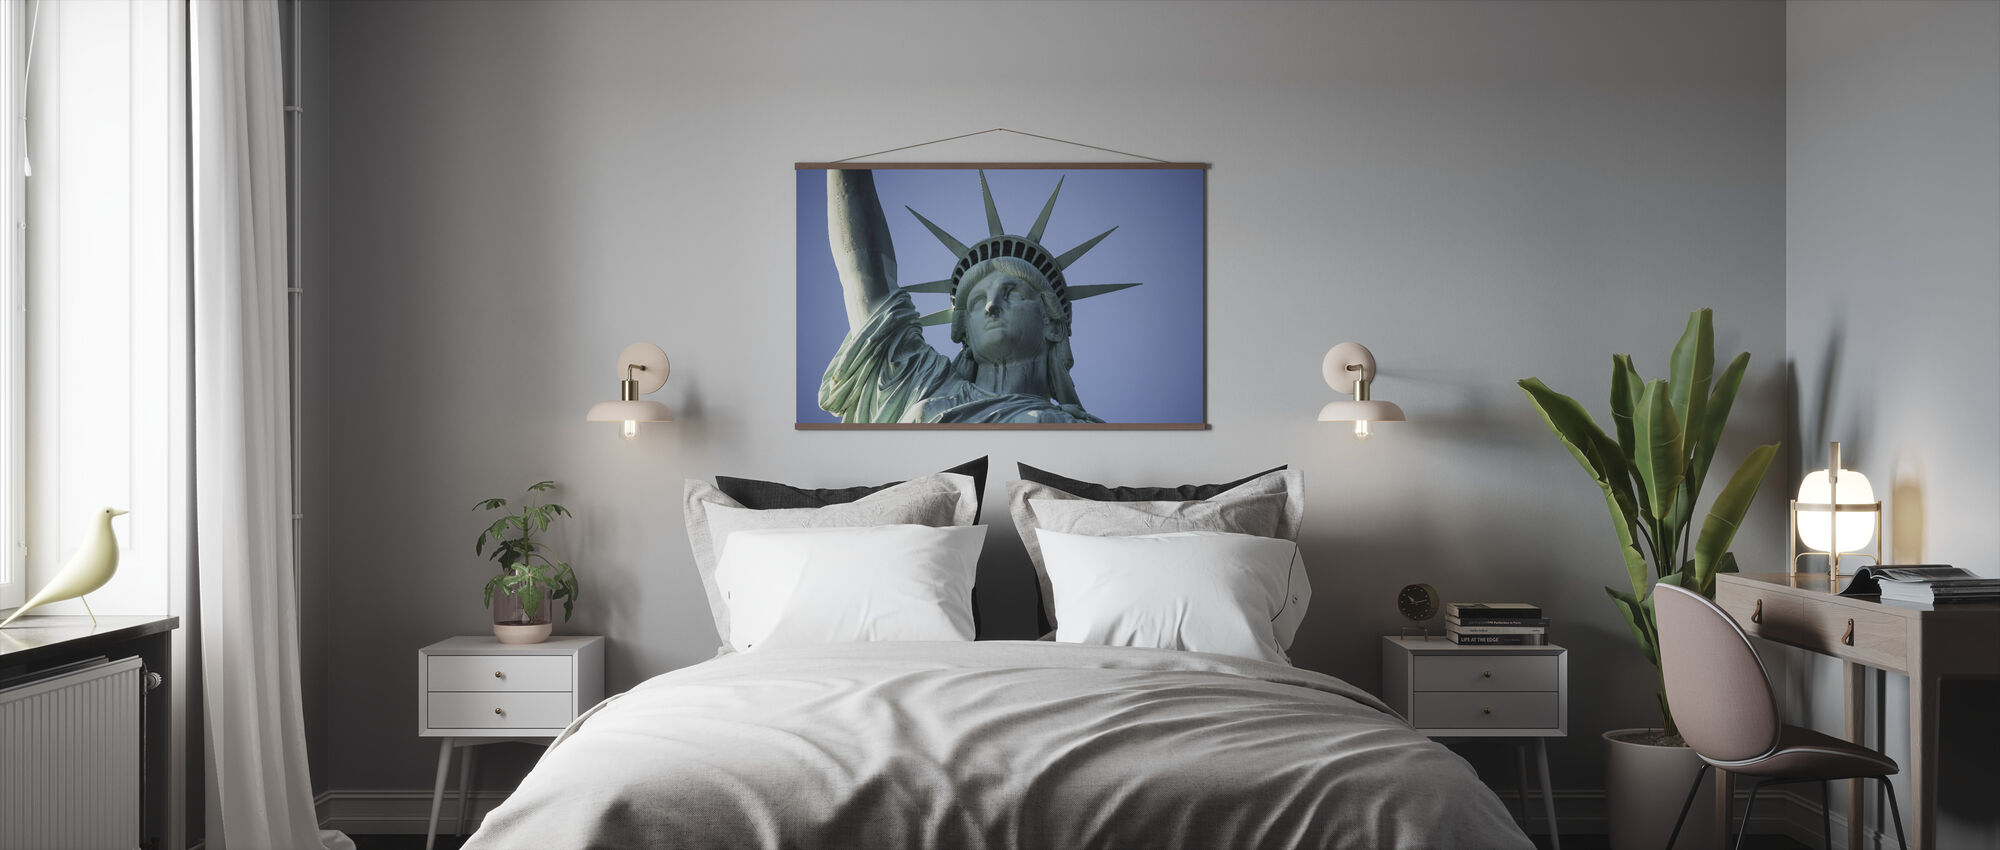 Statue of Liberty - Poster - Bedroom